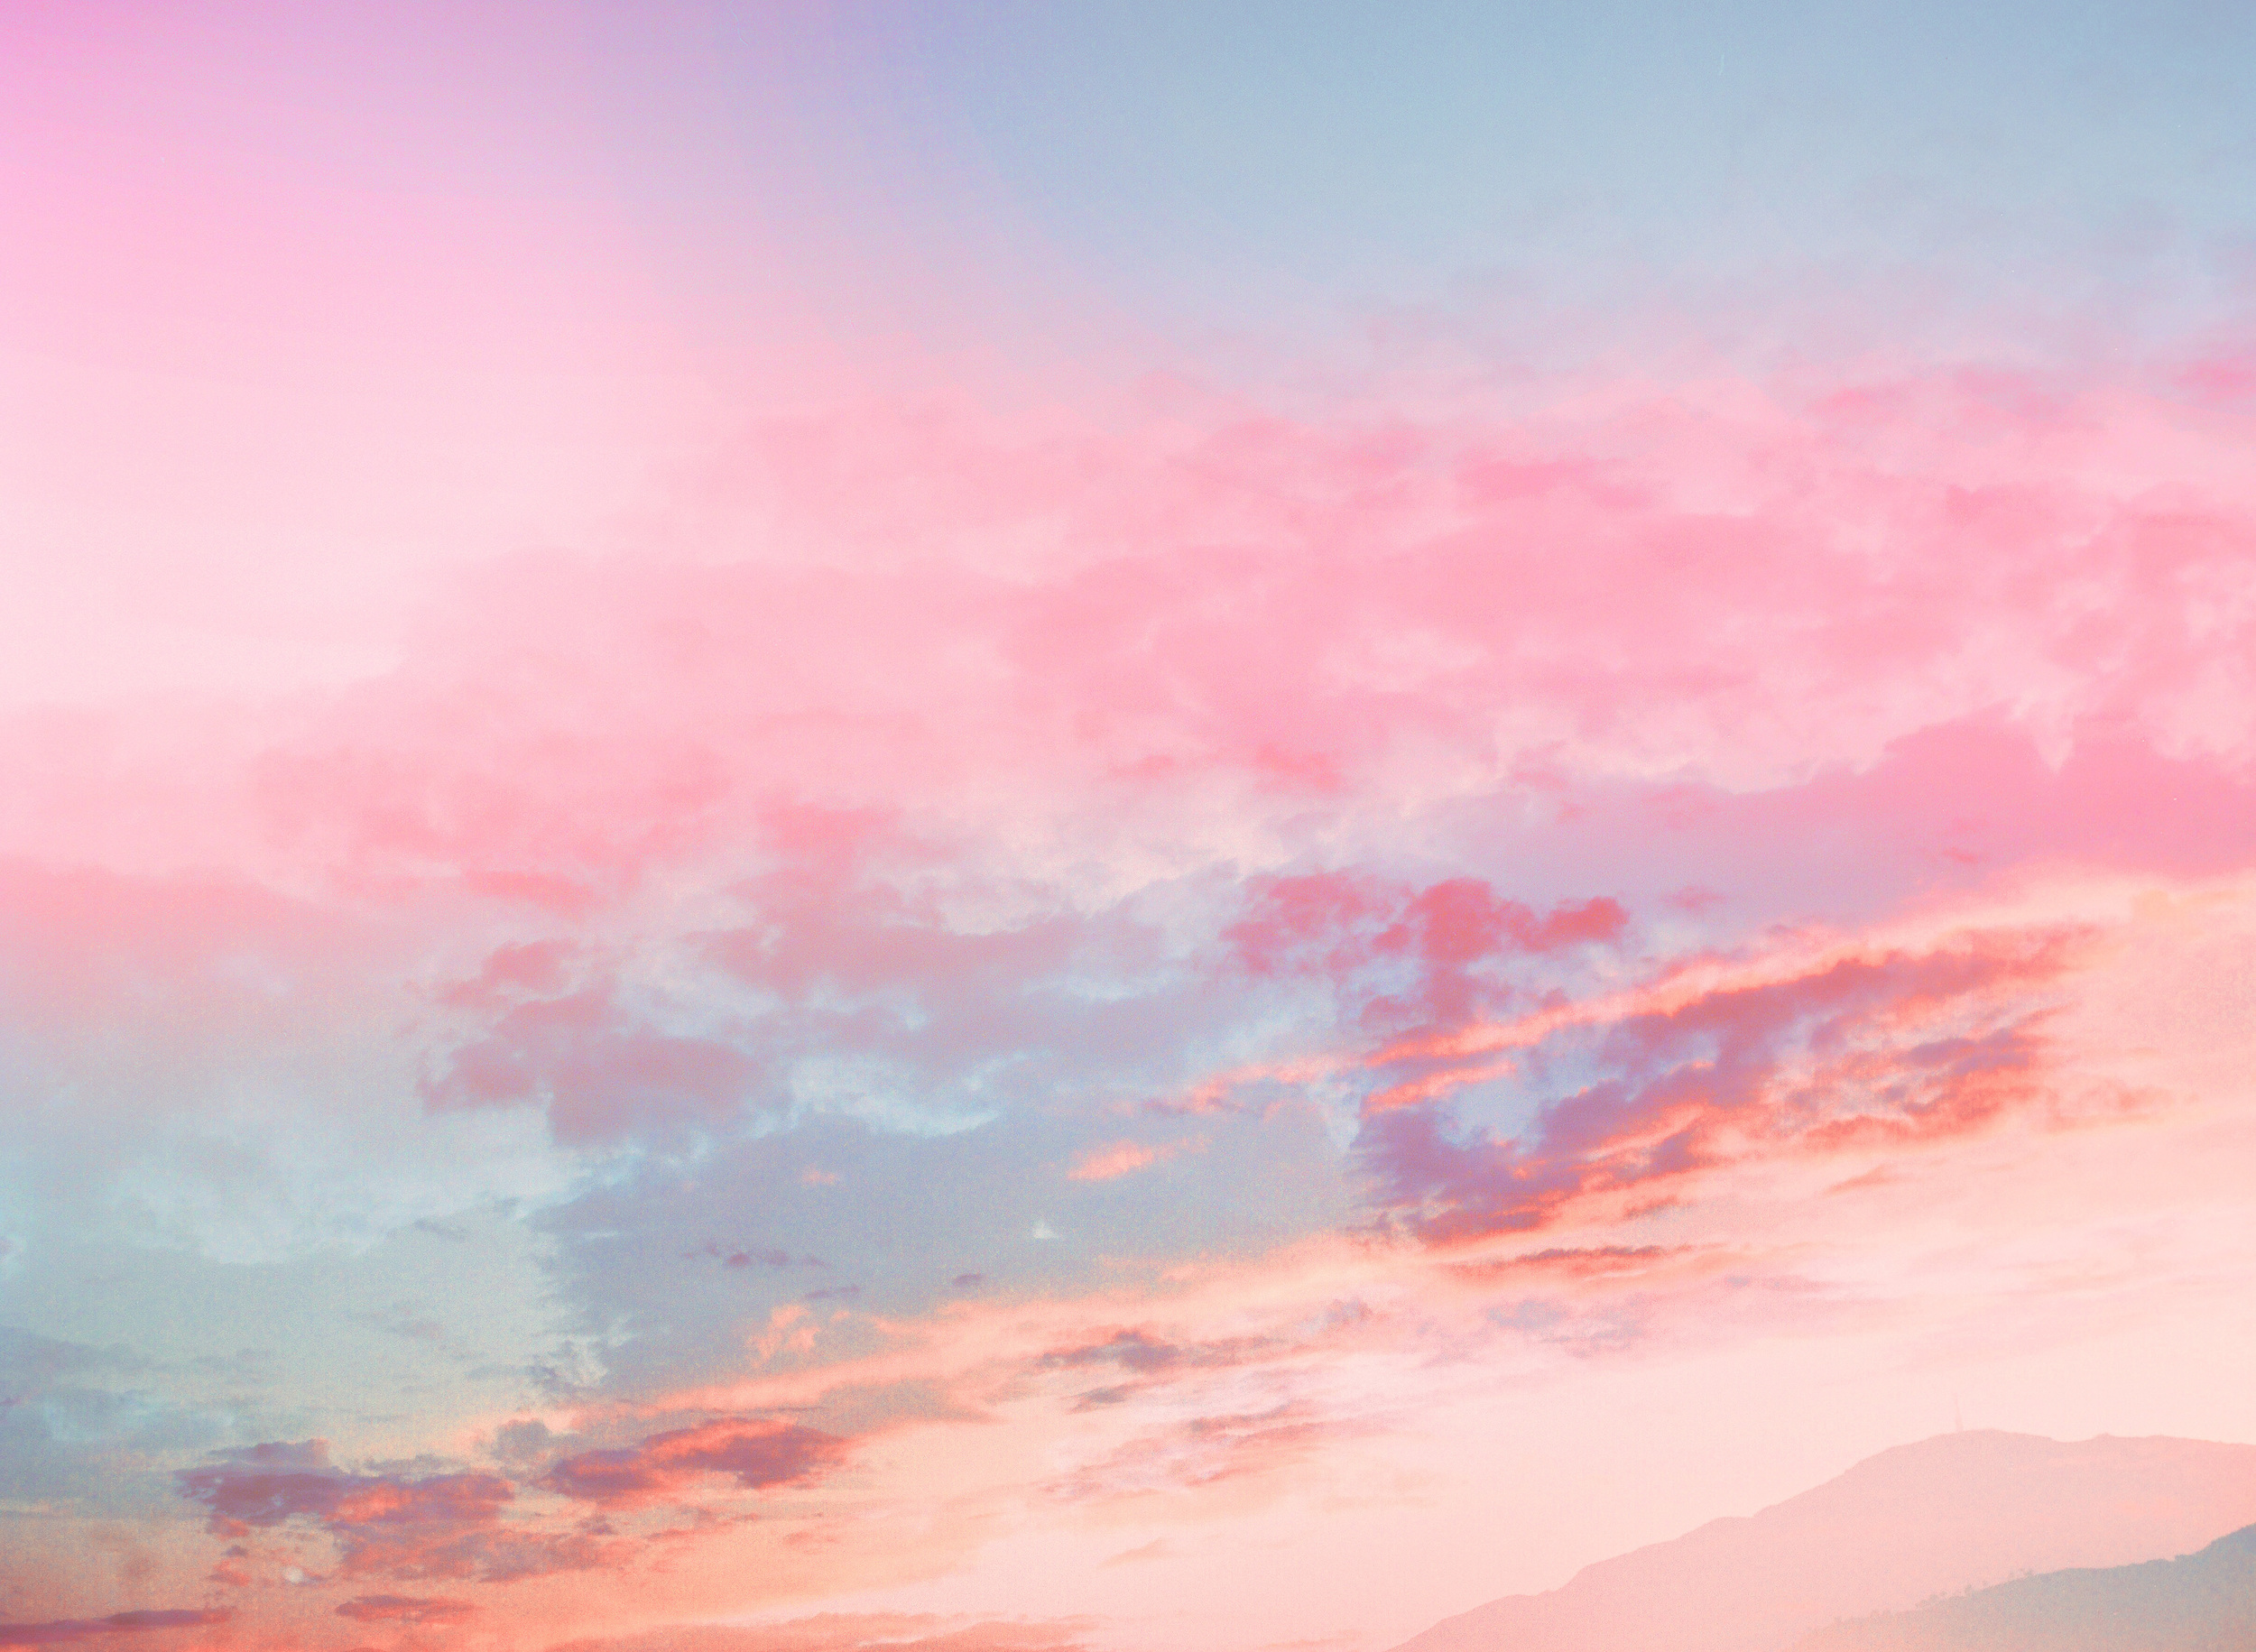 clouds_pink_cottoncandy.jpg